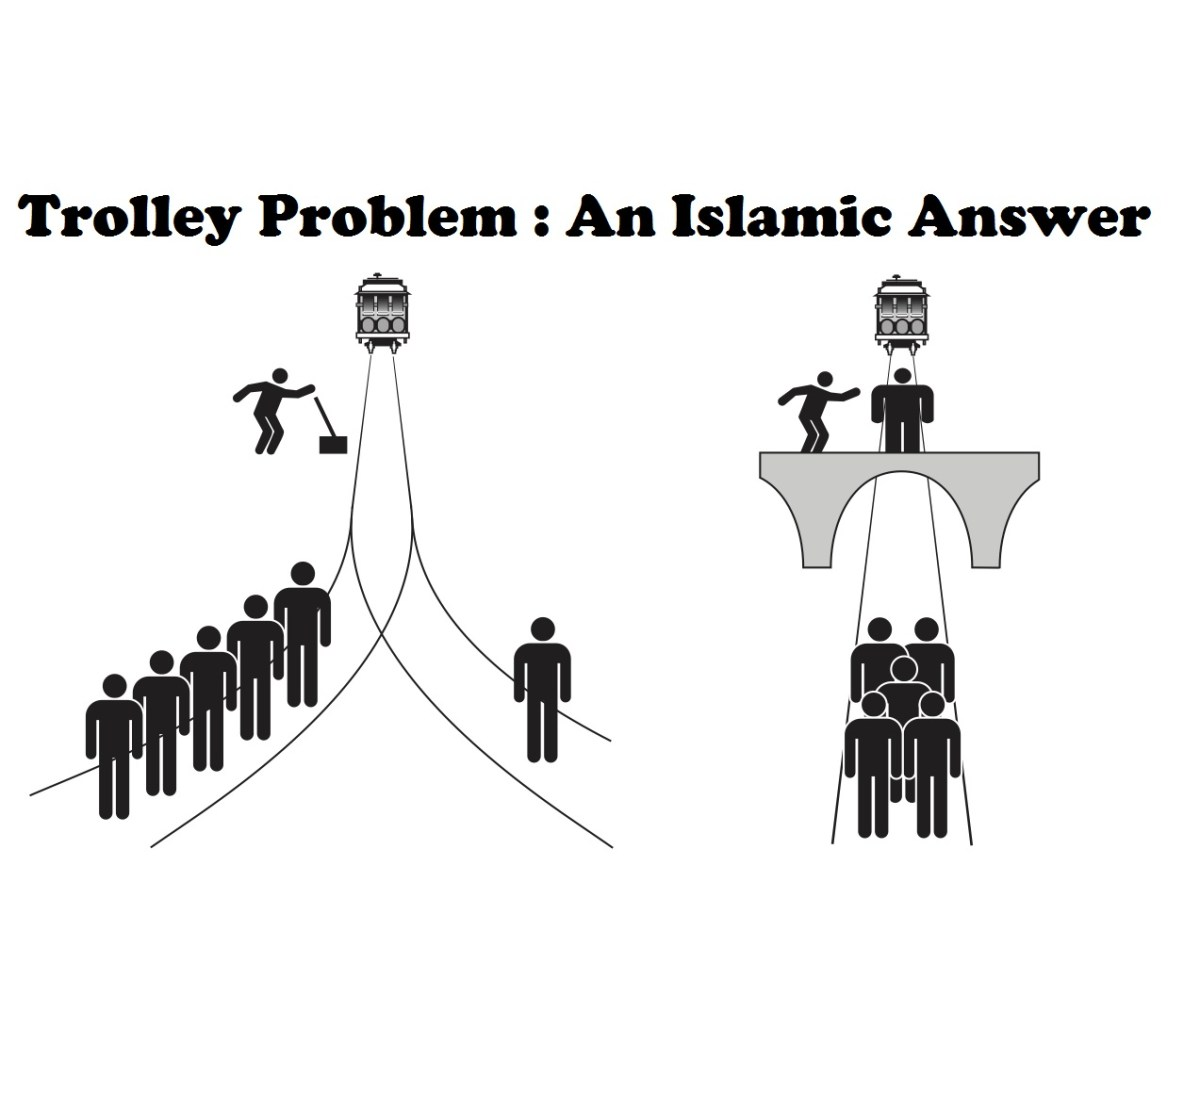 Trolley Problem : An Islamic Answer